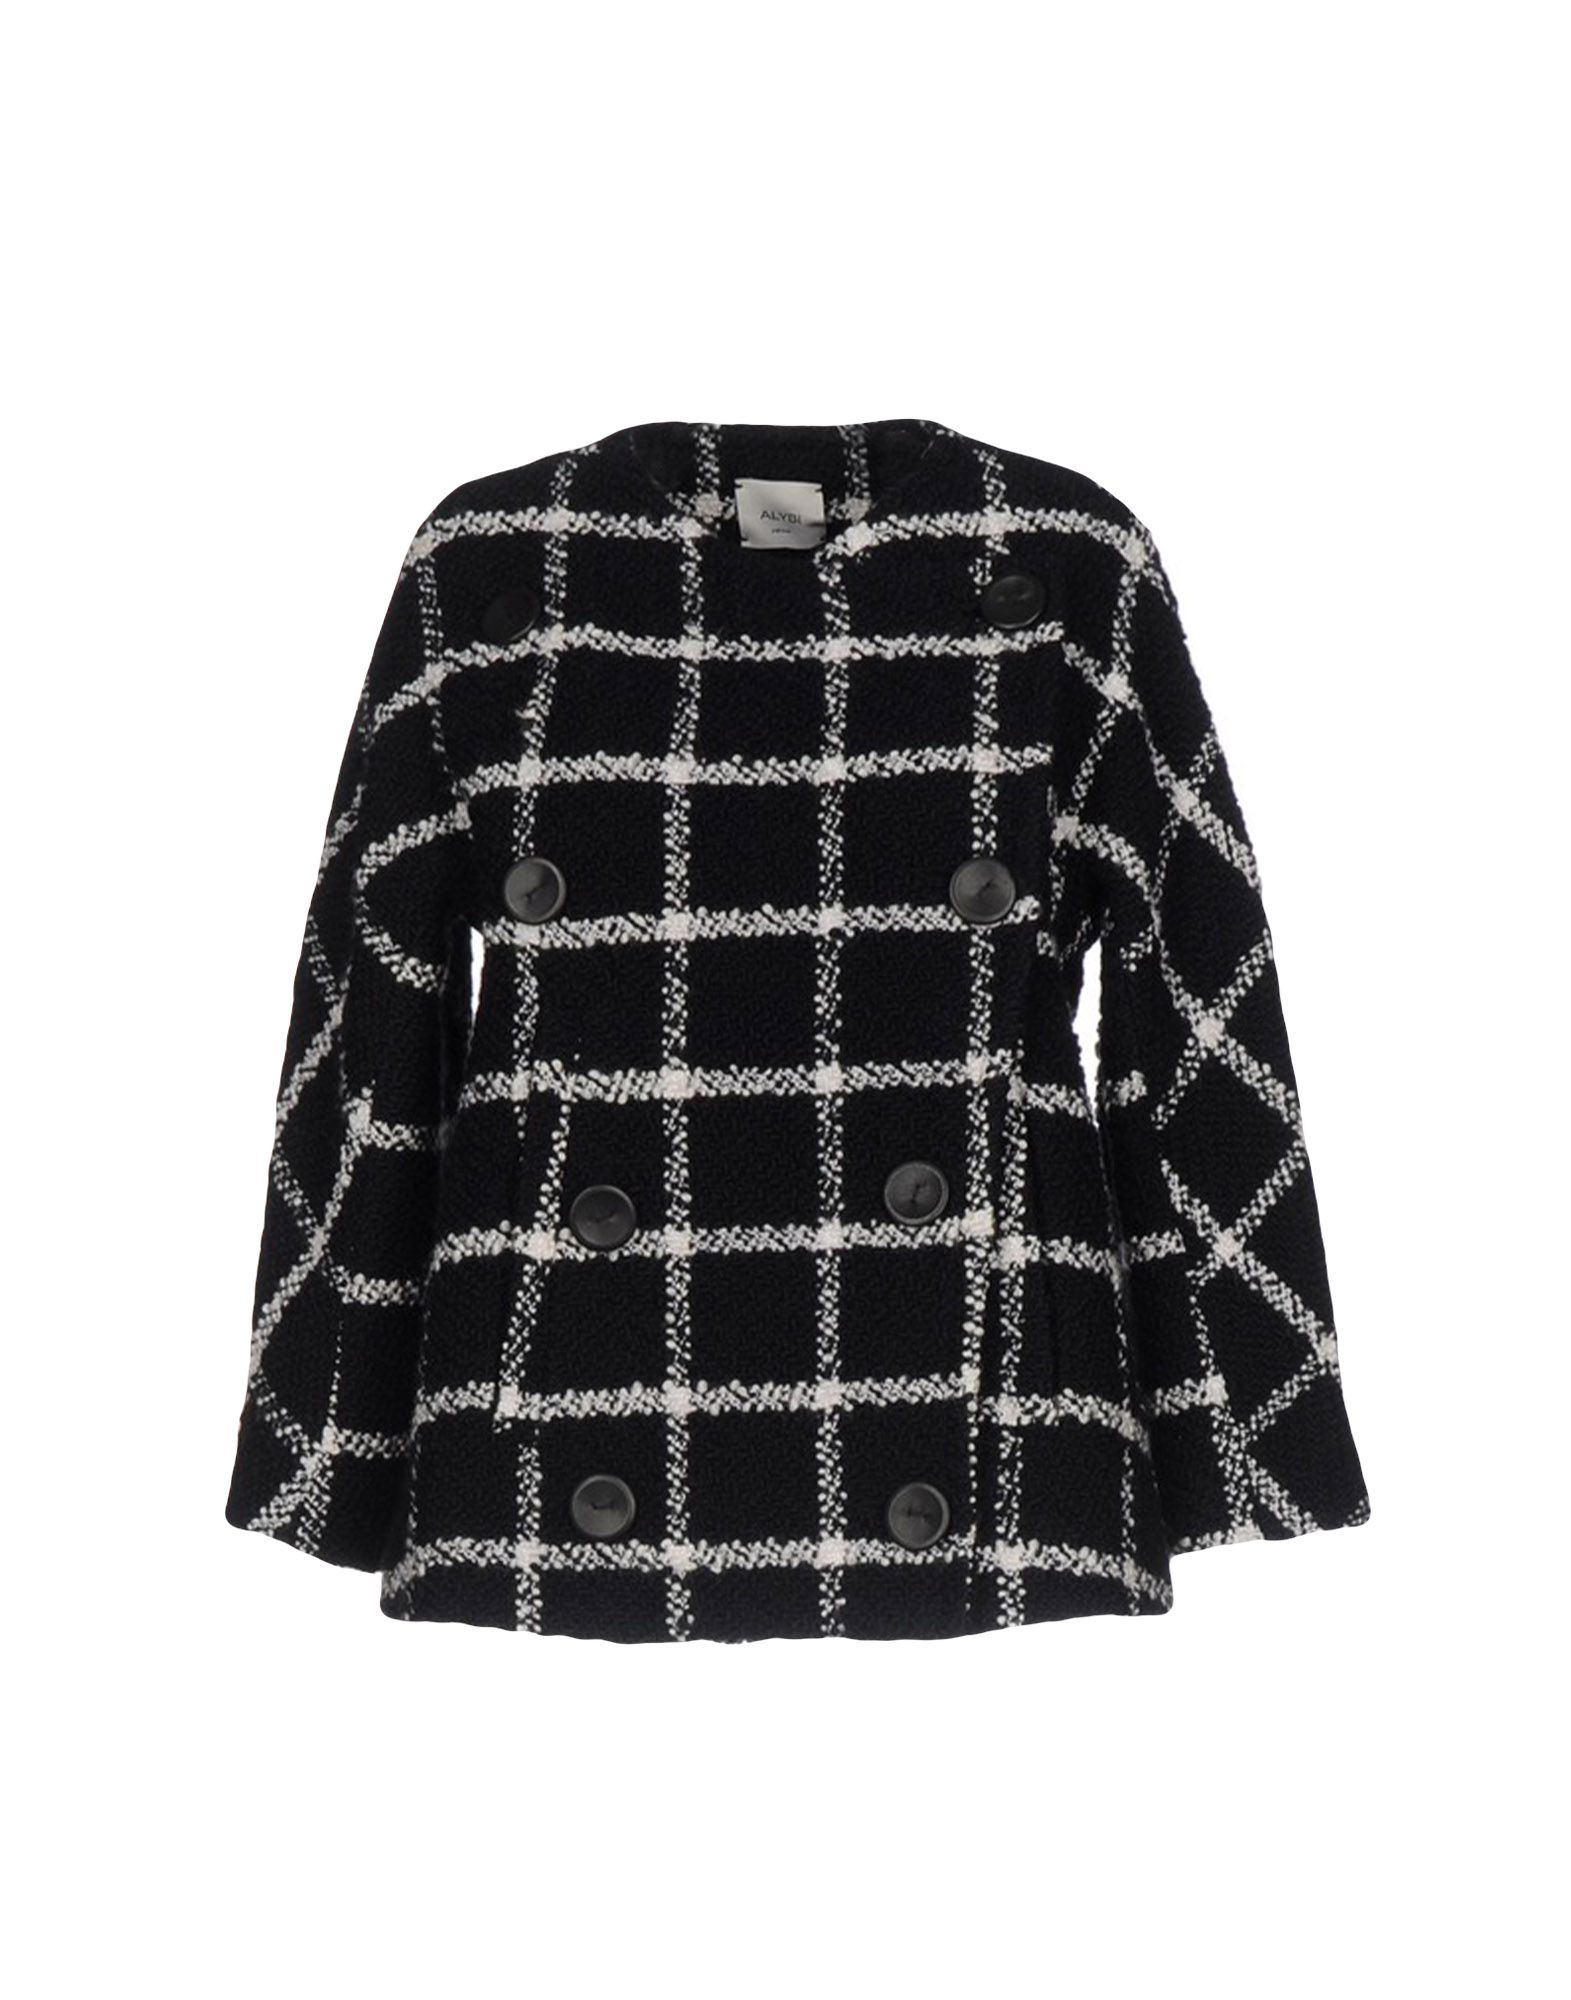 SALE - 30% and more off on Coats & Jackets